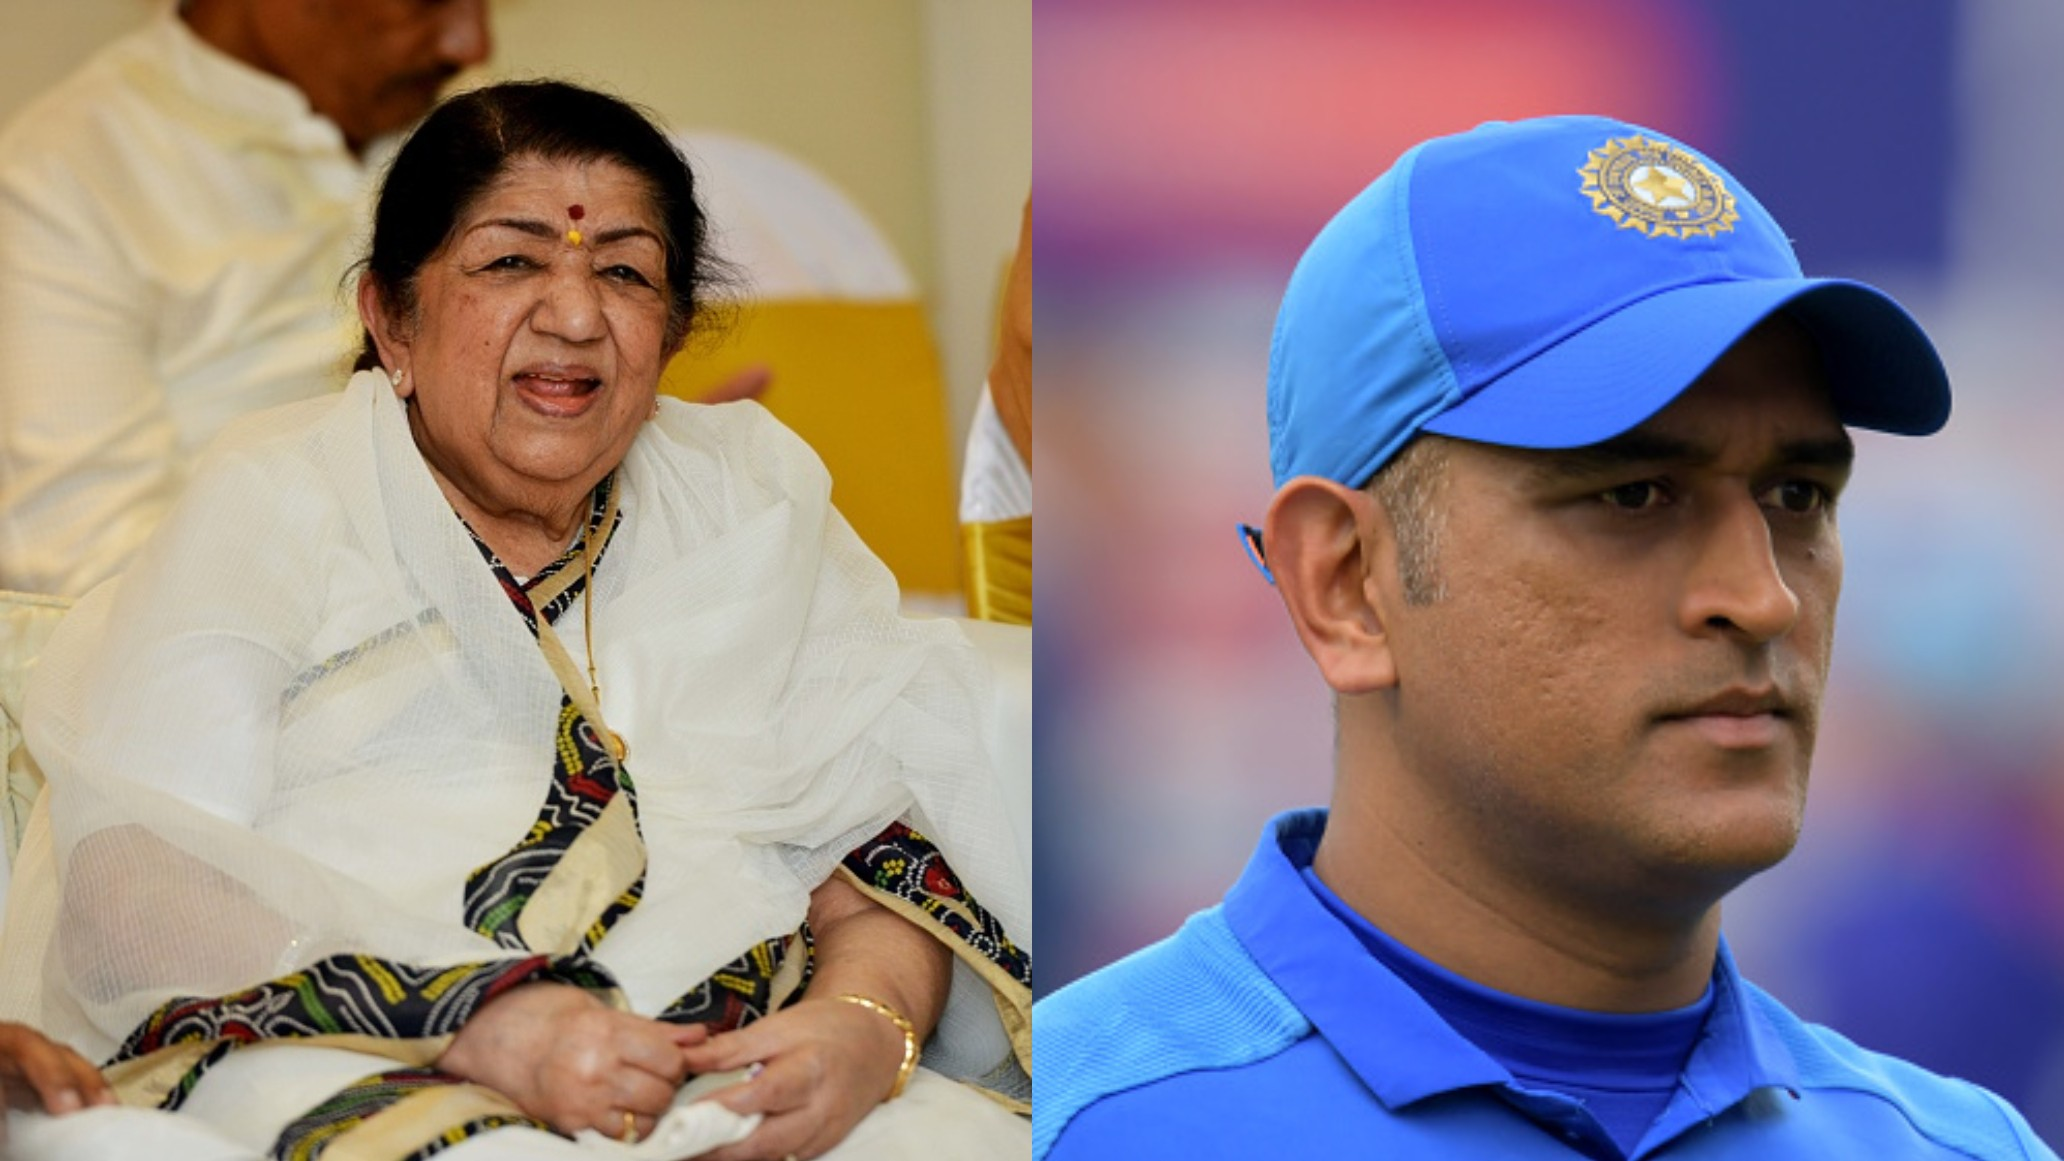 CWC 2019: Lata Mangeshkar says to MS Dhoni that the country still needs him to continue playing